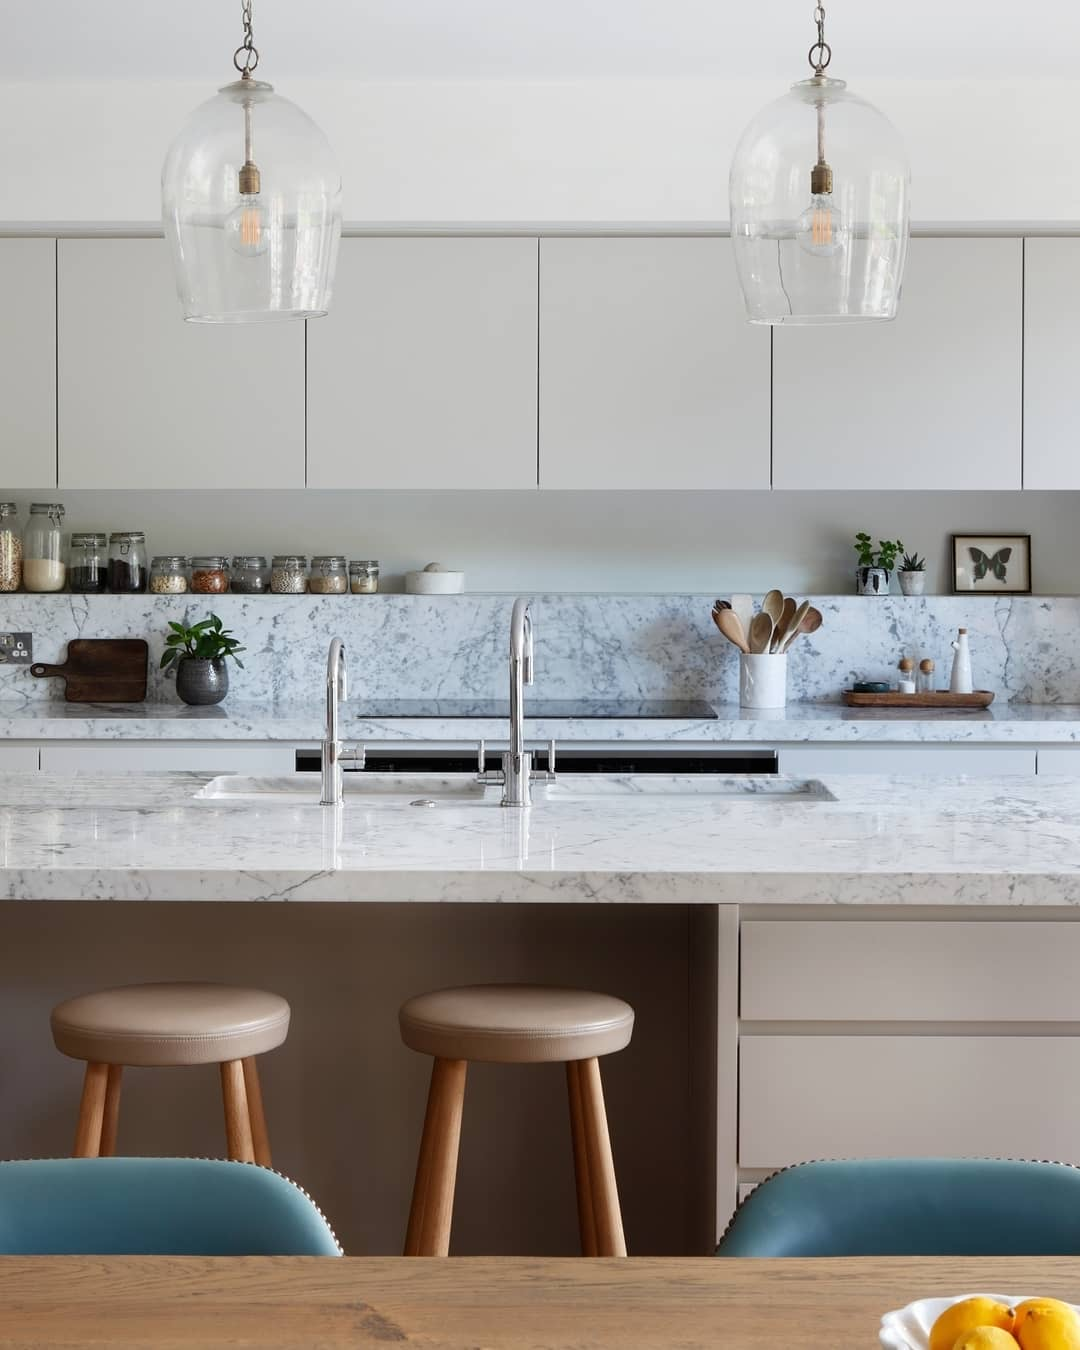 Image of marble natural stone worktops in a kitchen by @deroseesa